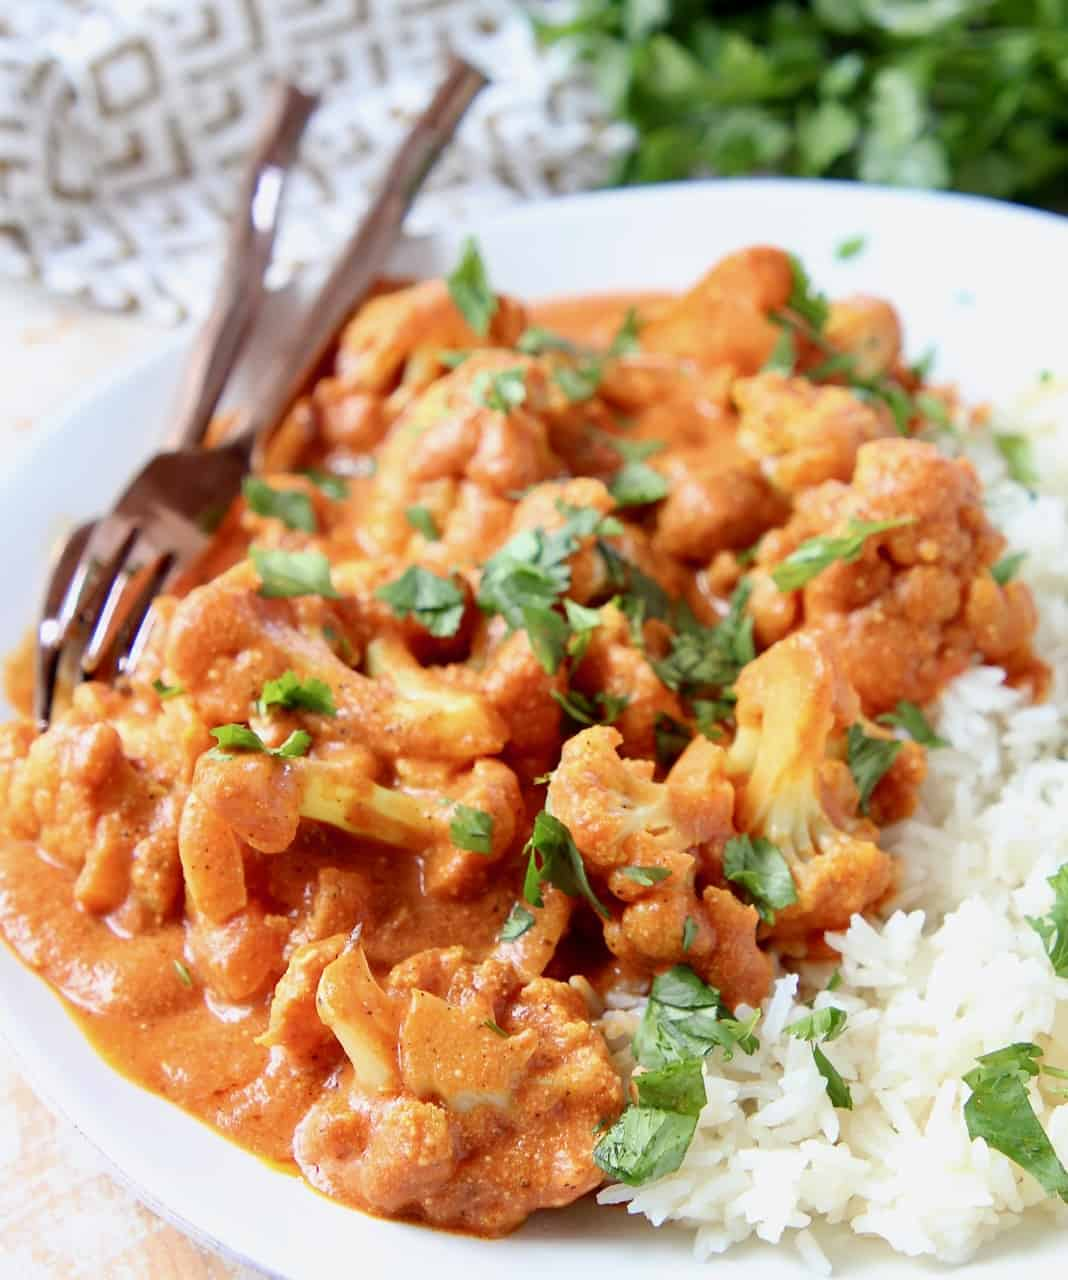 Cauliflower florets on plate covered in curry sauce